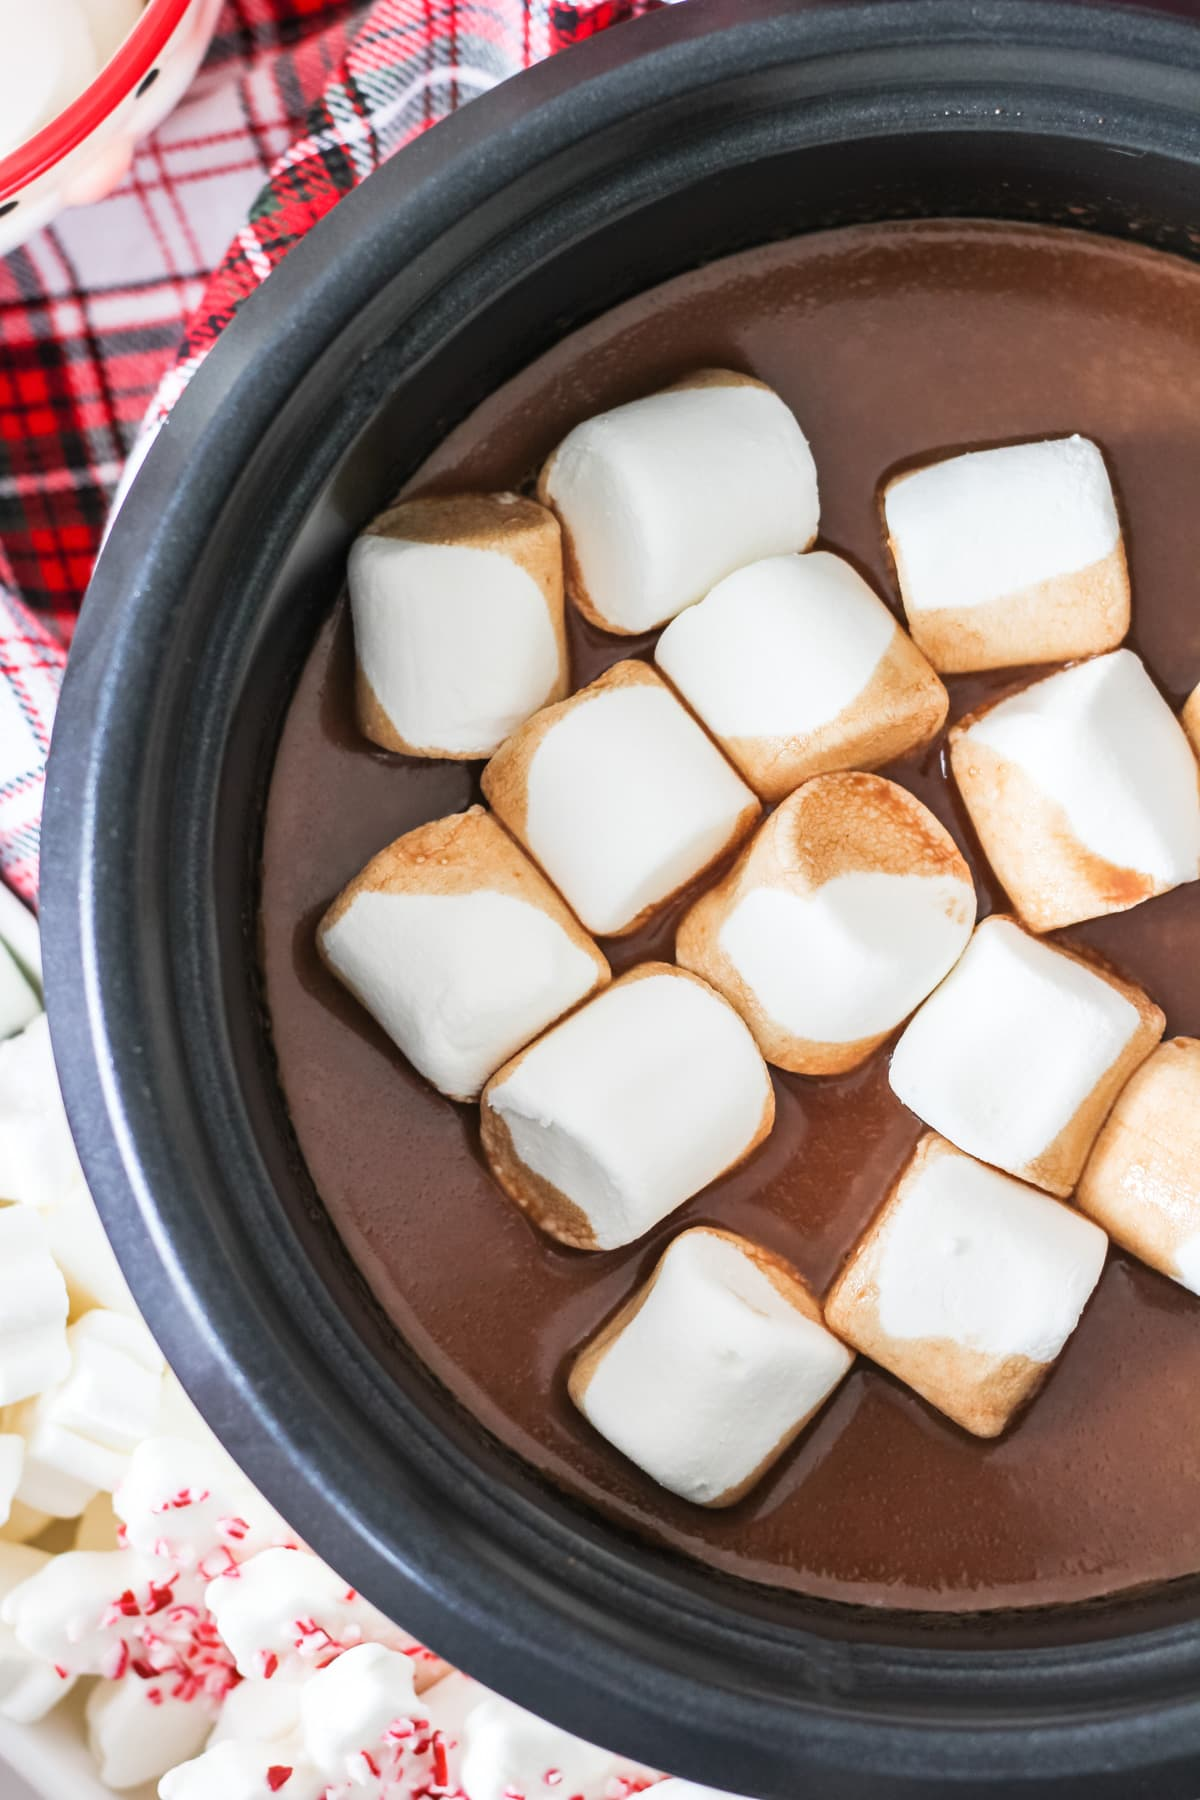 A top down view of a Slow Cooker of Hot Chocolate and marshmallows